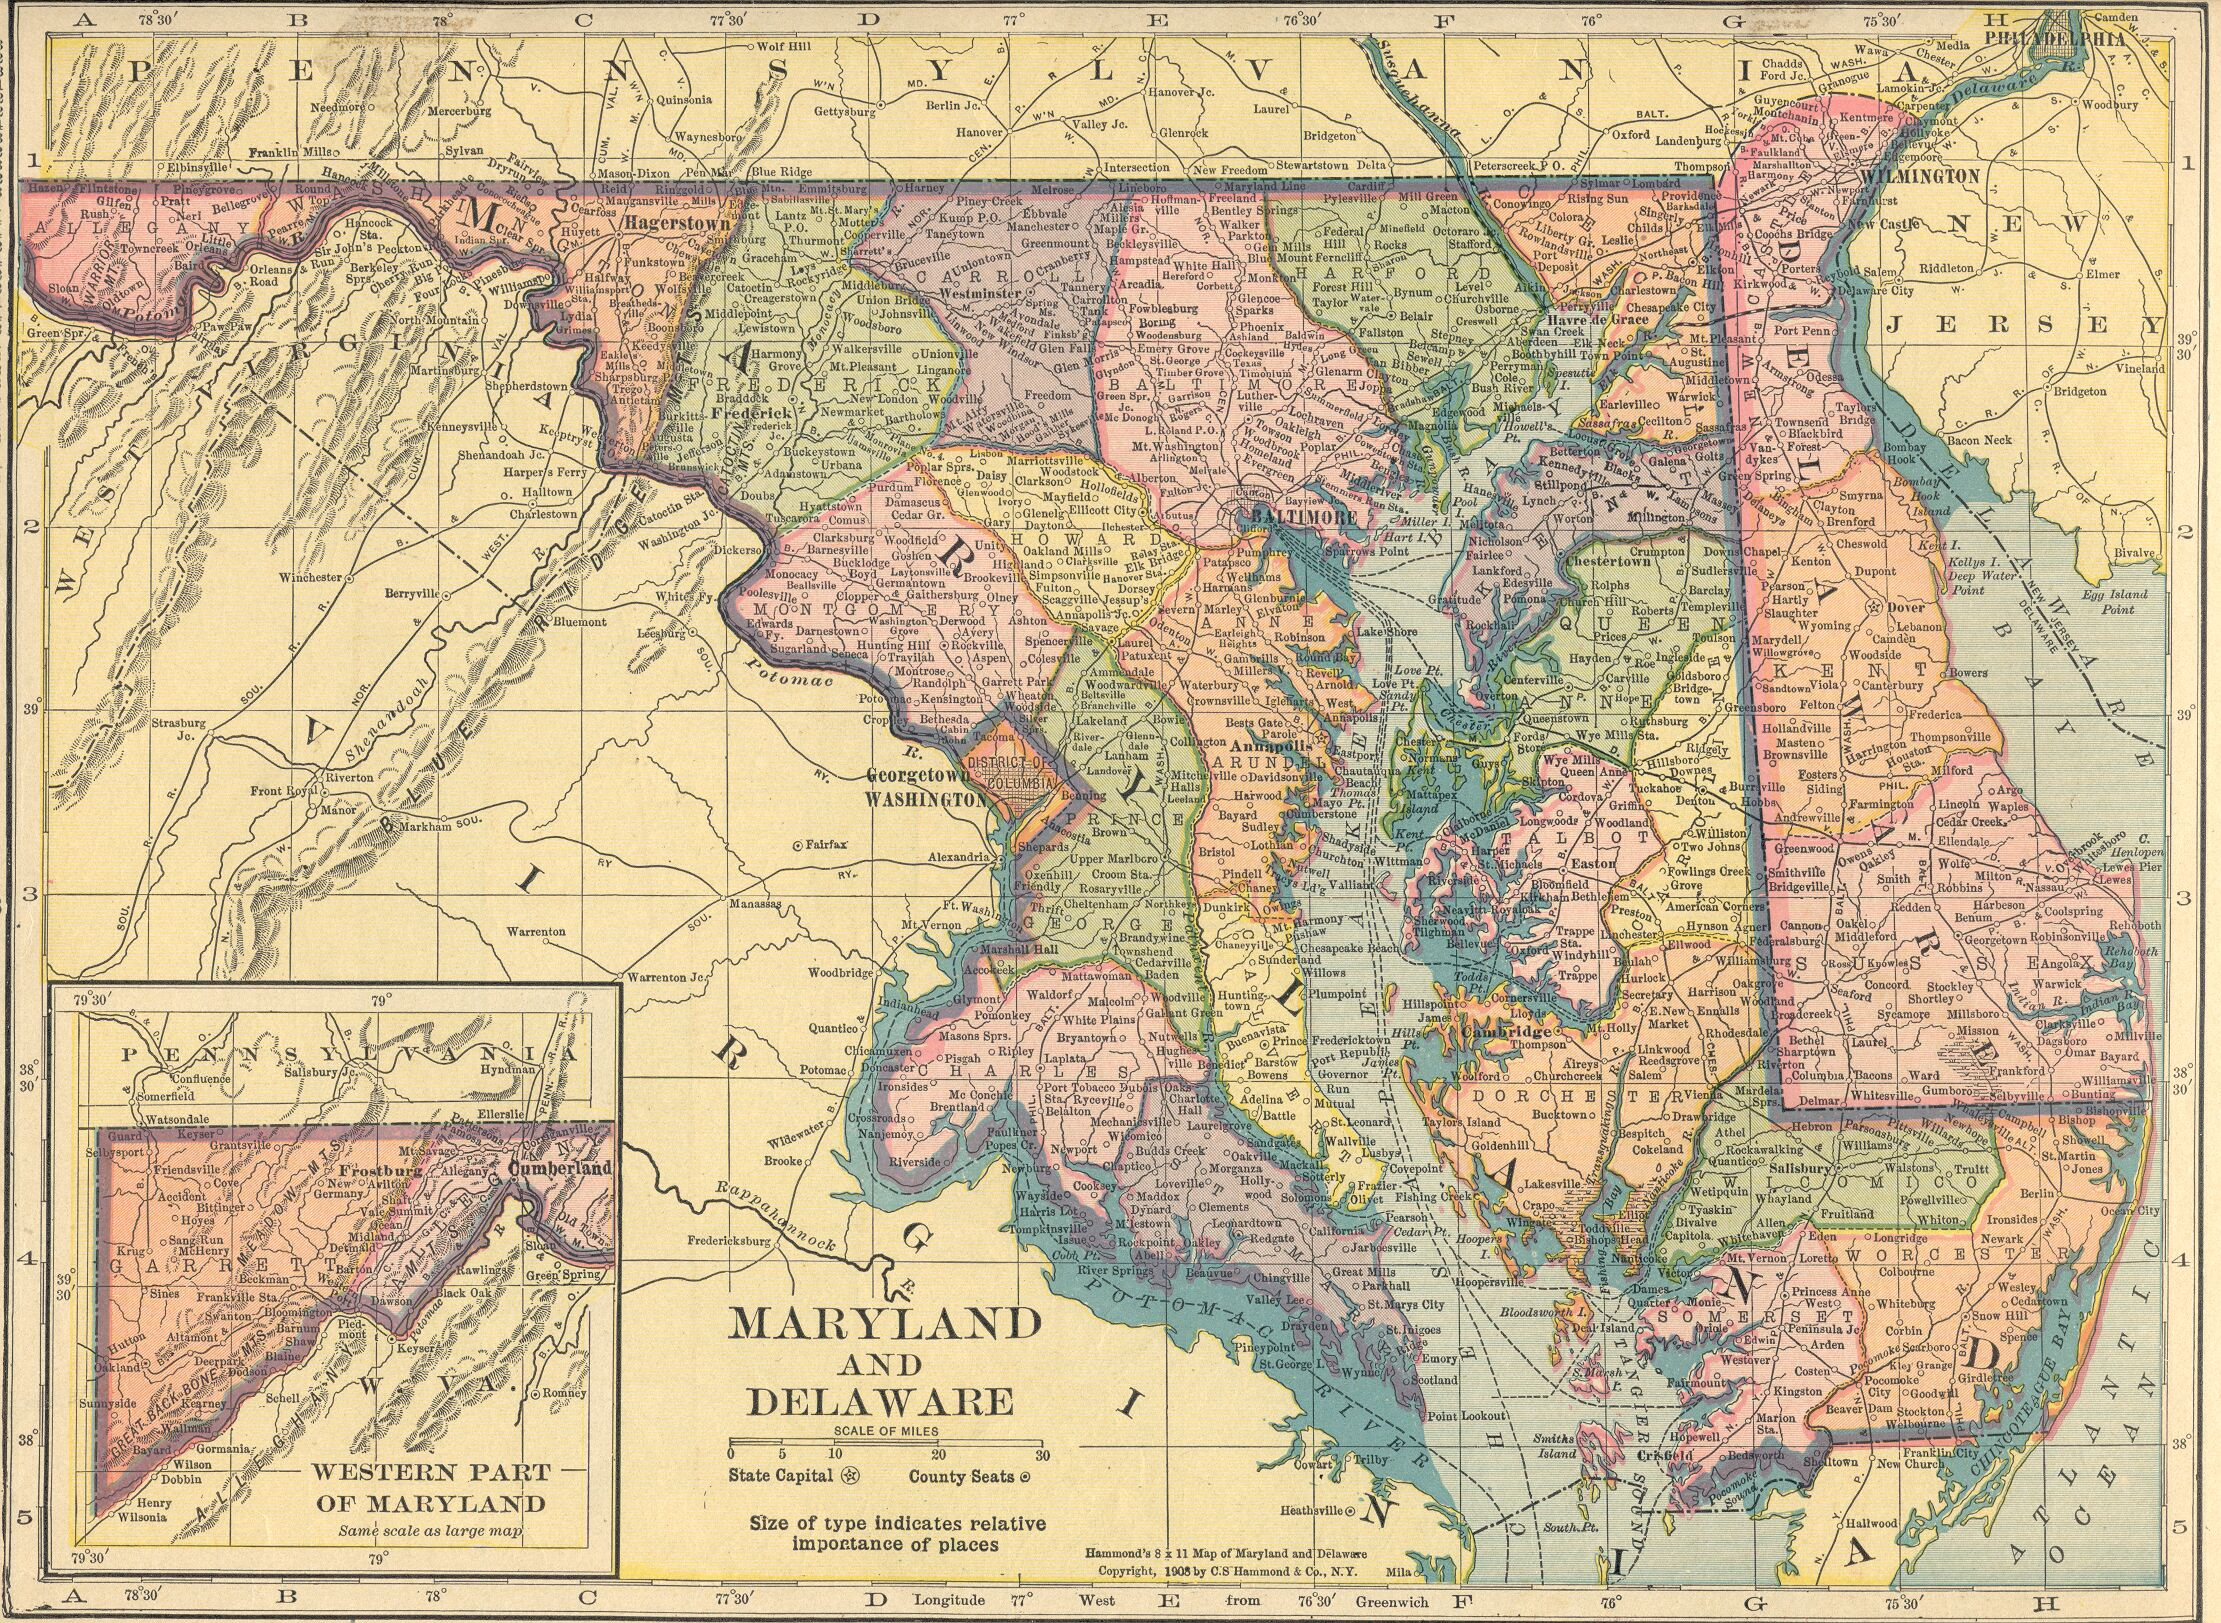 map of maryland and delaware – bnhspine.com